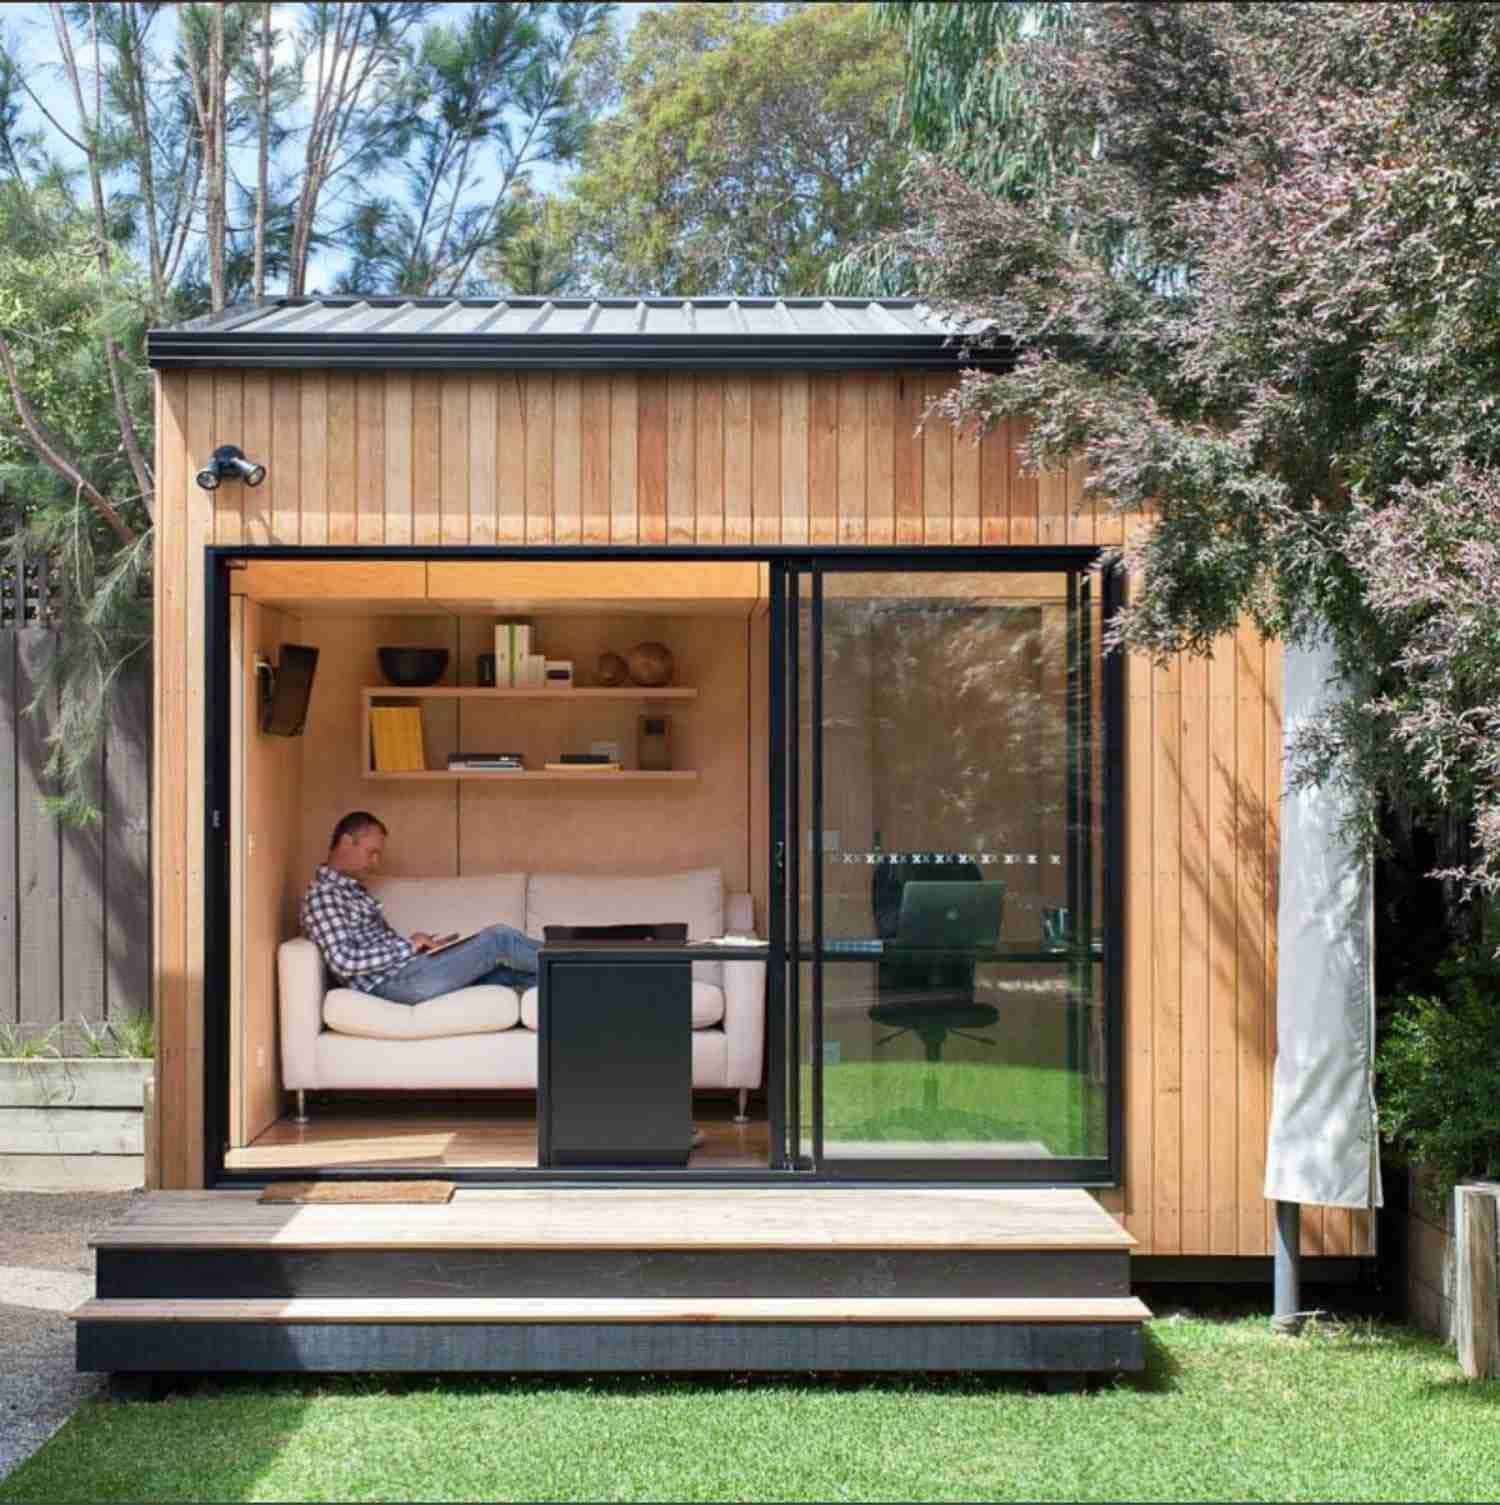 20 Cool Initiatives Of How To Makeover Small Backyard Shed Ideas Simphome Shed Design Building A Shed Backyard Shed